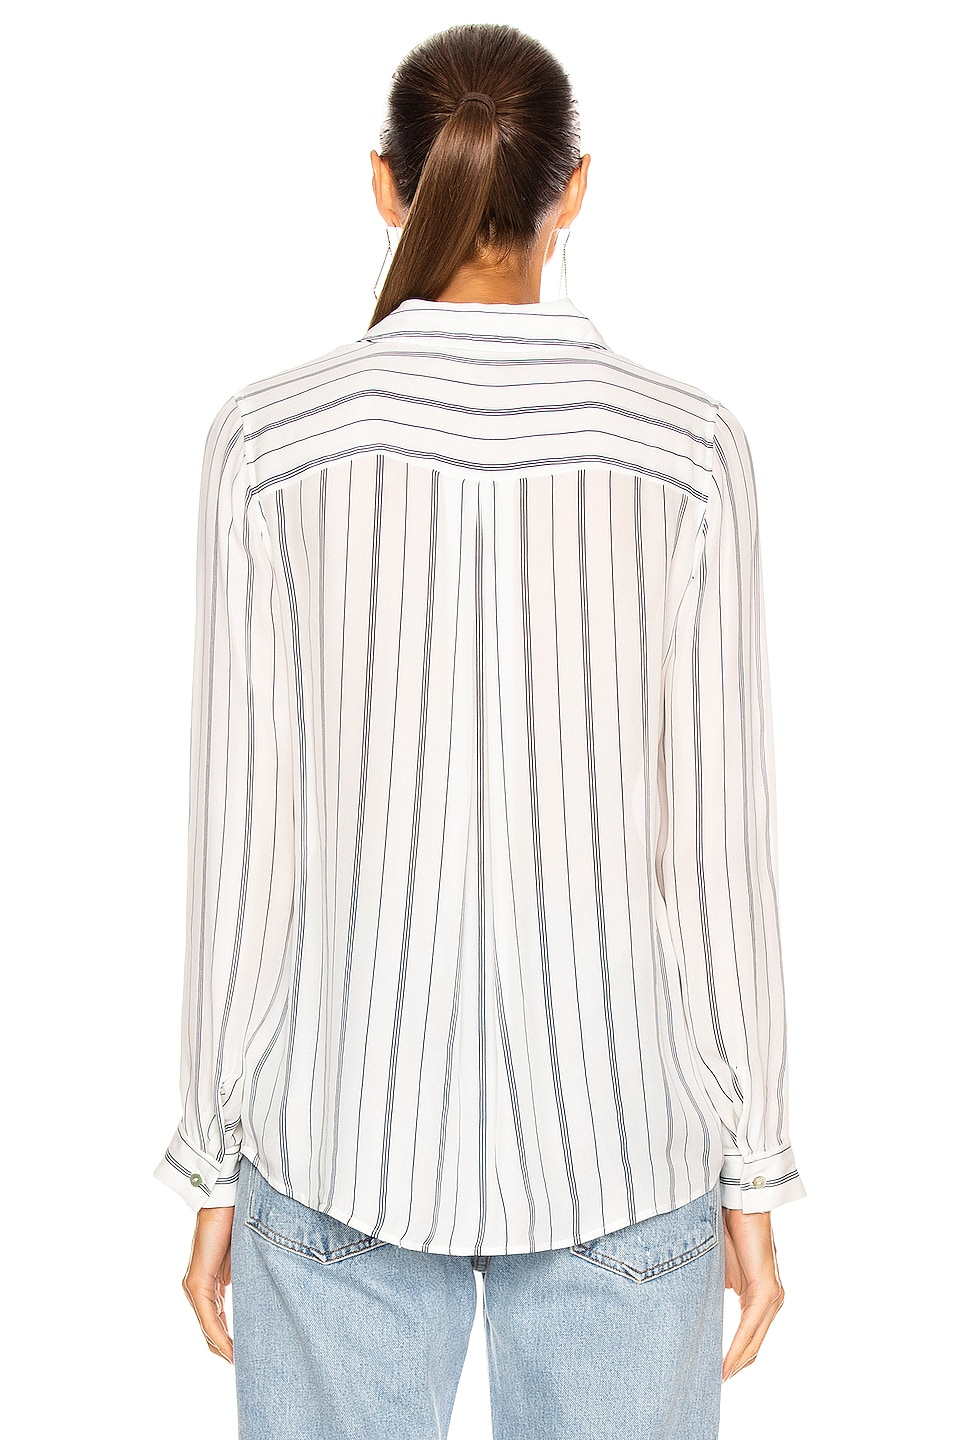 Image 3 of L'AGENCE Nina Blouse in Ivory & Navy Pinstripe